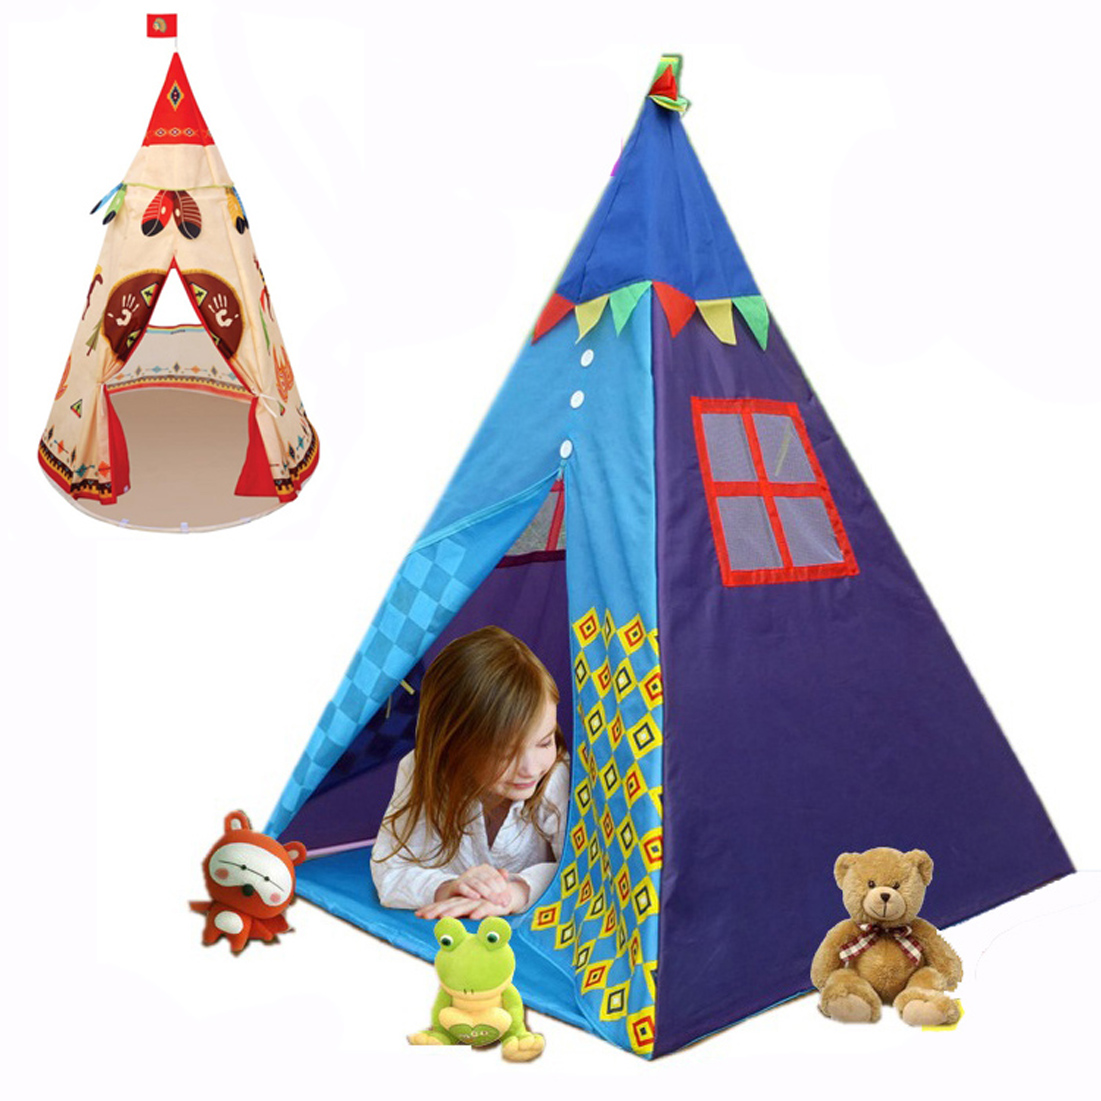 New Princess Teepee Tent Indian Play House Indoor Outdoor Play Tent For Girls And Boys Play Role Play Game play